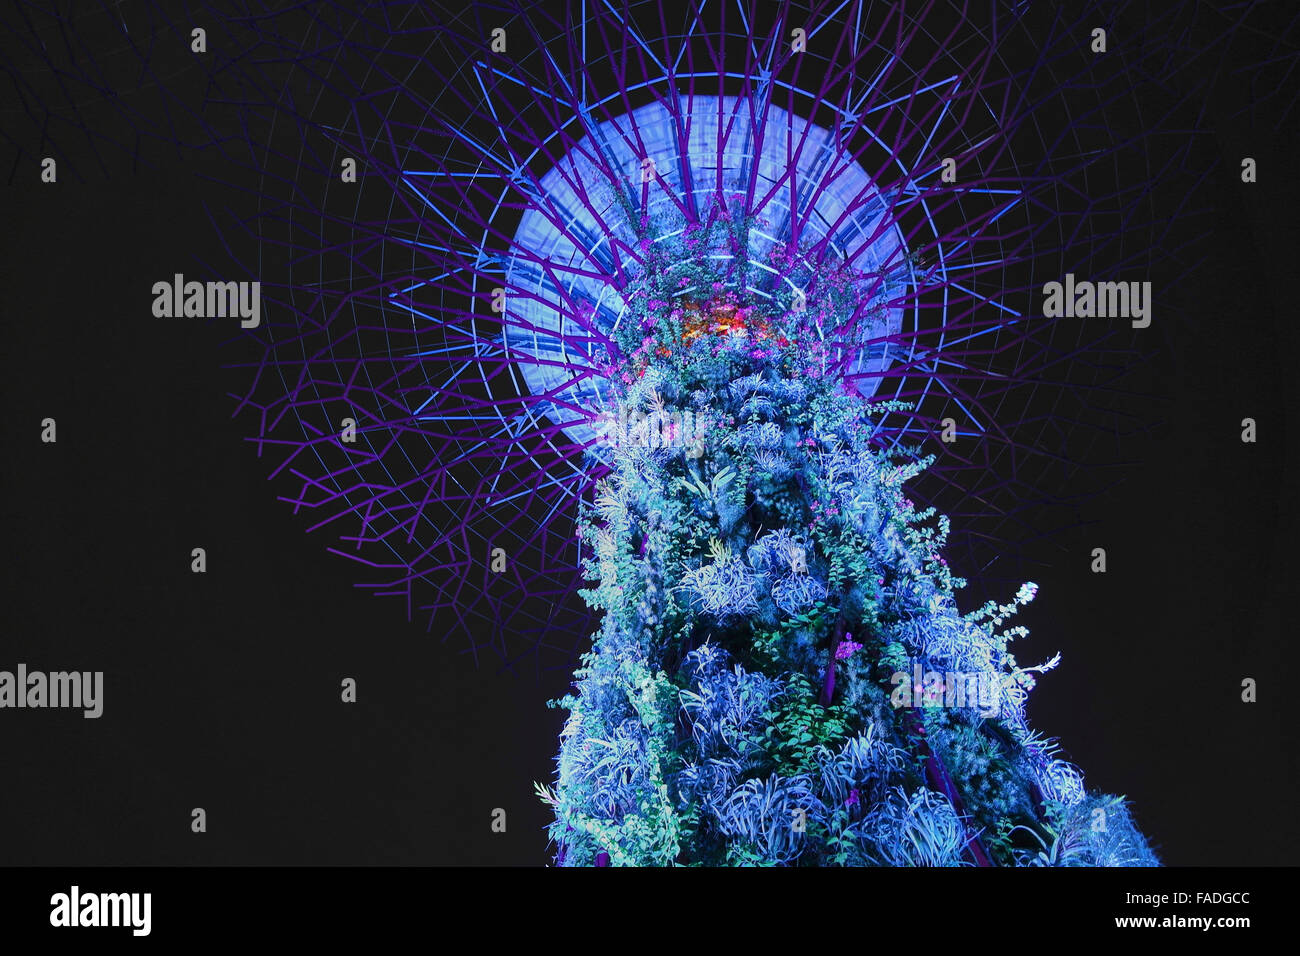 Super Tree at garden by the Bay in Singapore Marina - Singapore - Stock Image